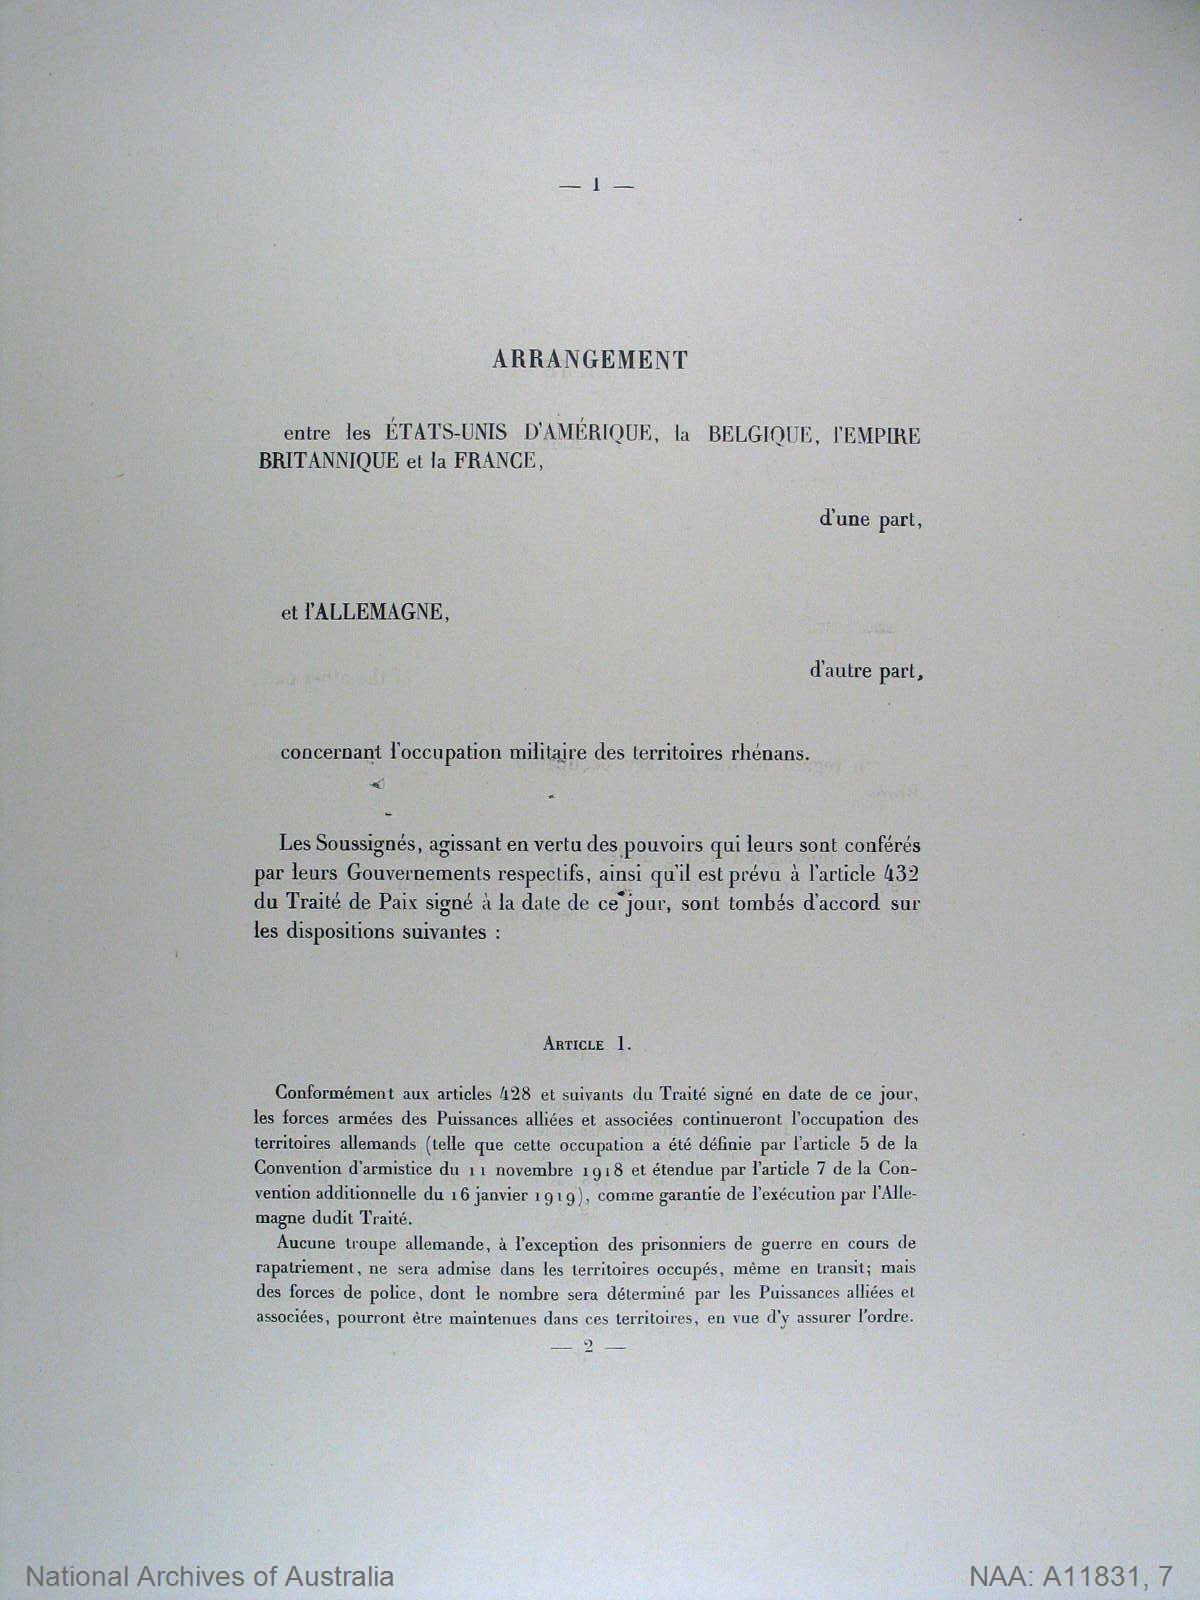 Agreement [Between the United States of America, Belgium, the British Empire, and France, of the one part, and Germany, of the other part, with regard to the military occupation of the territories of the Rhine.]